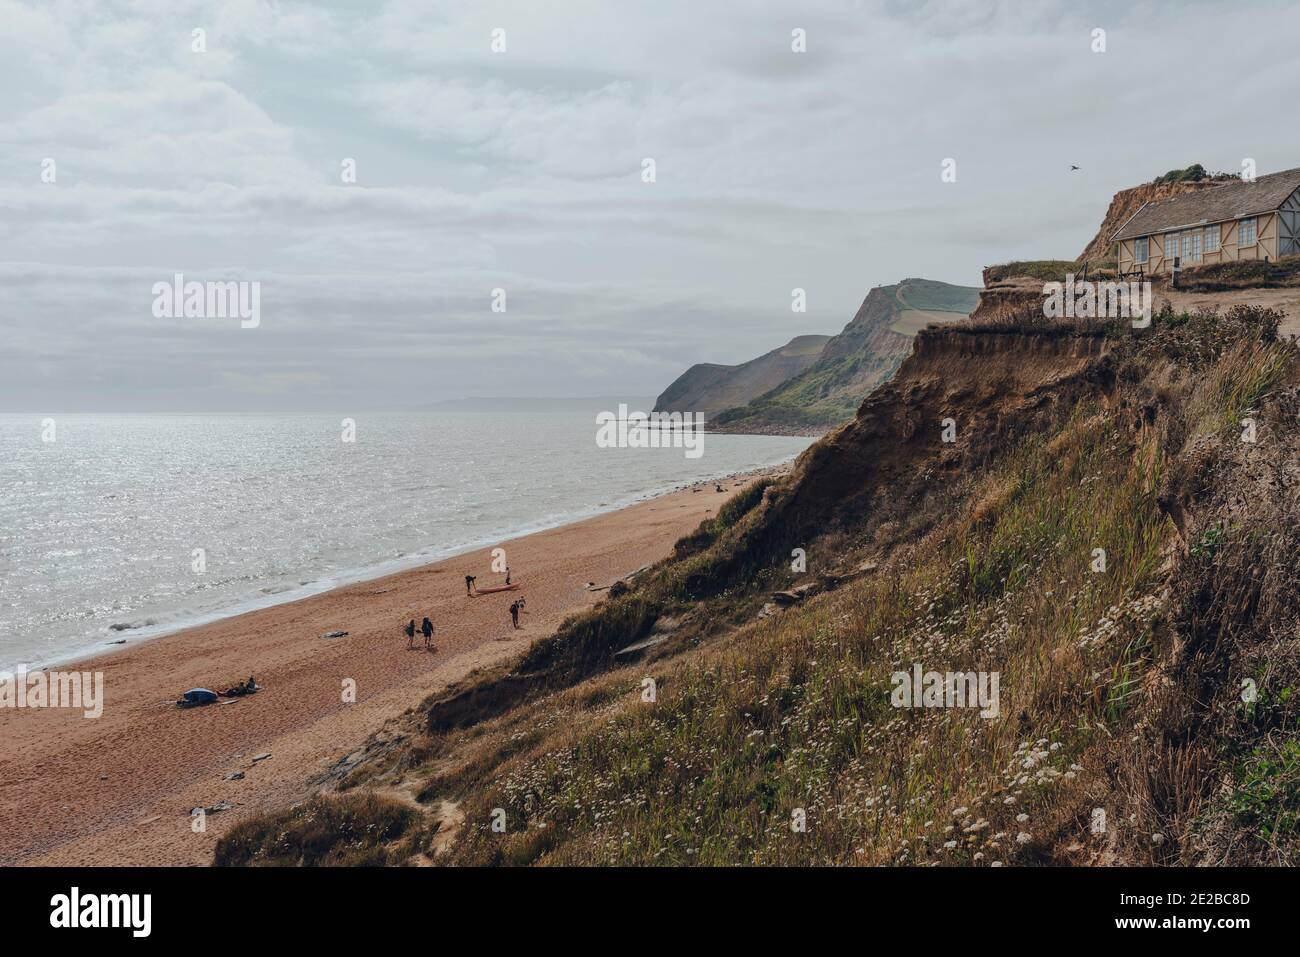 Eype Beach, UK - July 25, 2020: Scenic view of the Eype Beach and Jurassic Coast, a World Heritage Site on the English Channel coast of southern Engla Stock Photo